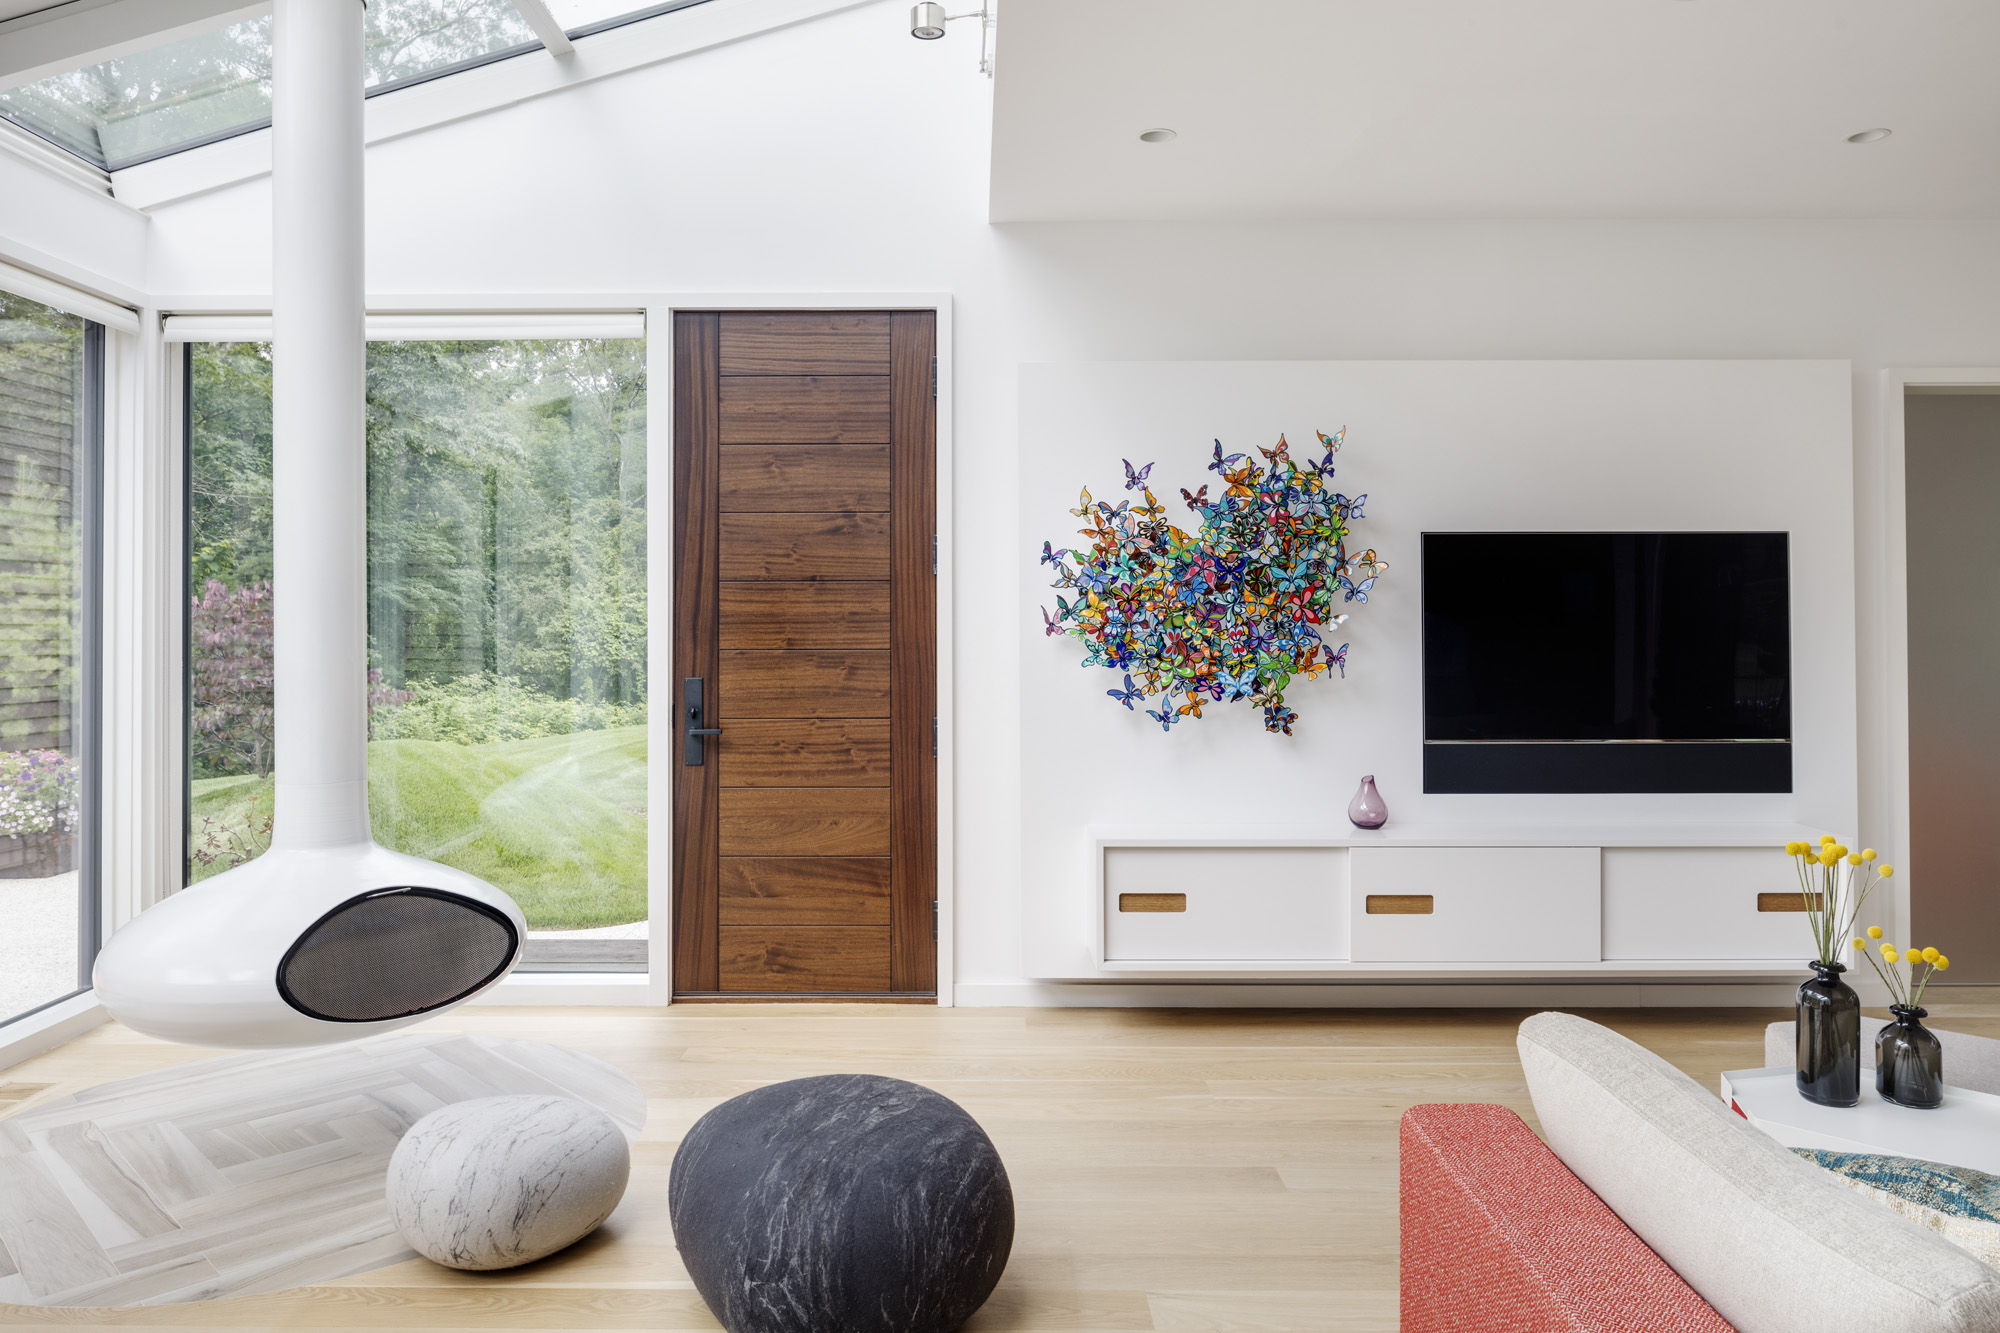 Matched with white walls, the white oak floors throughout the house set a neutral backdrop for playful, colored accents and accessories. In the family room, the white console from Asplund is placed below the bright butterfly artwork byDavid Kracov, titled My Heart is All A Flutter.